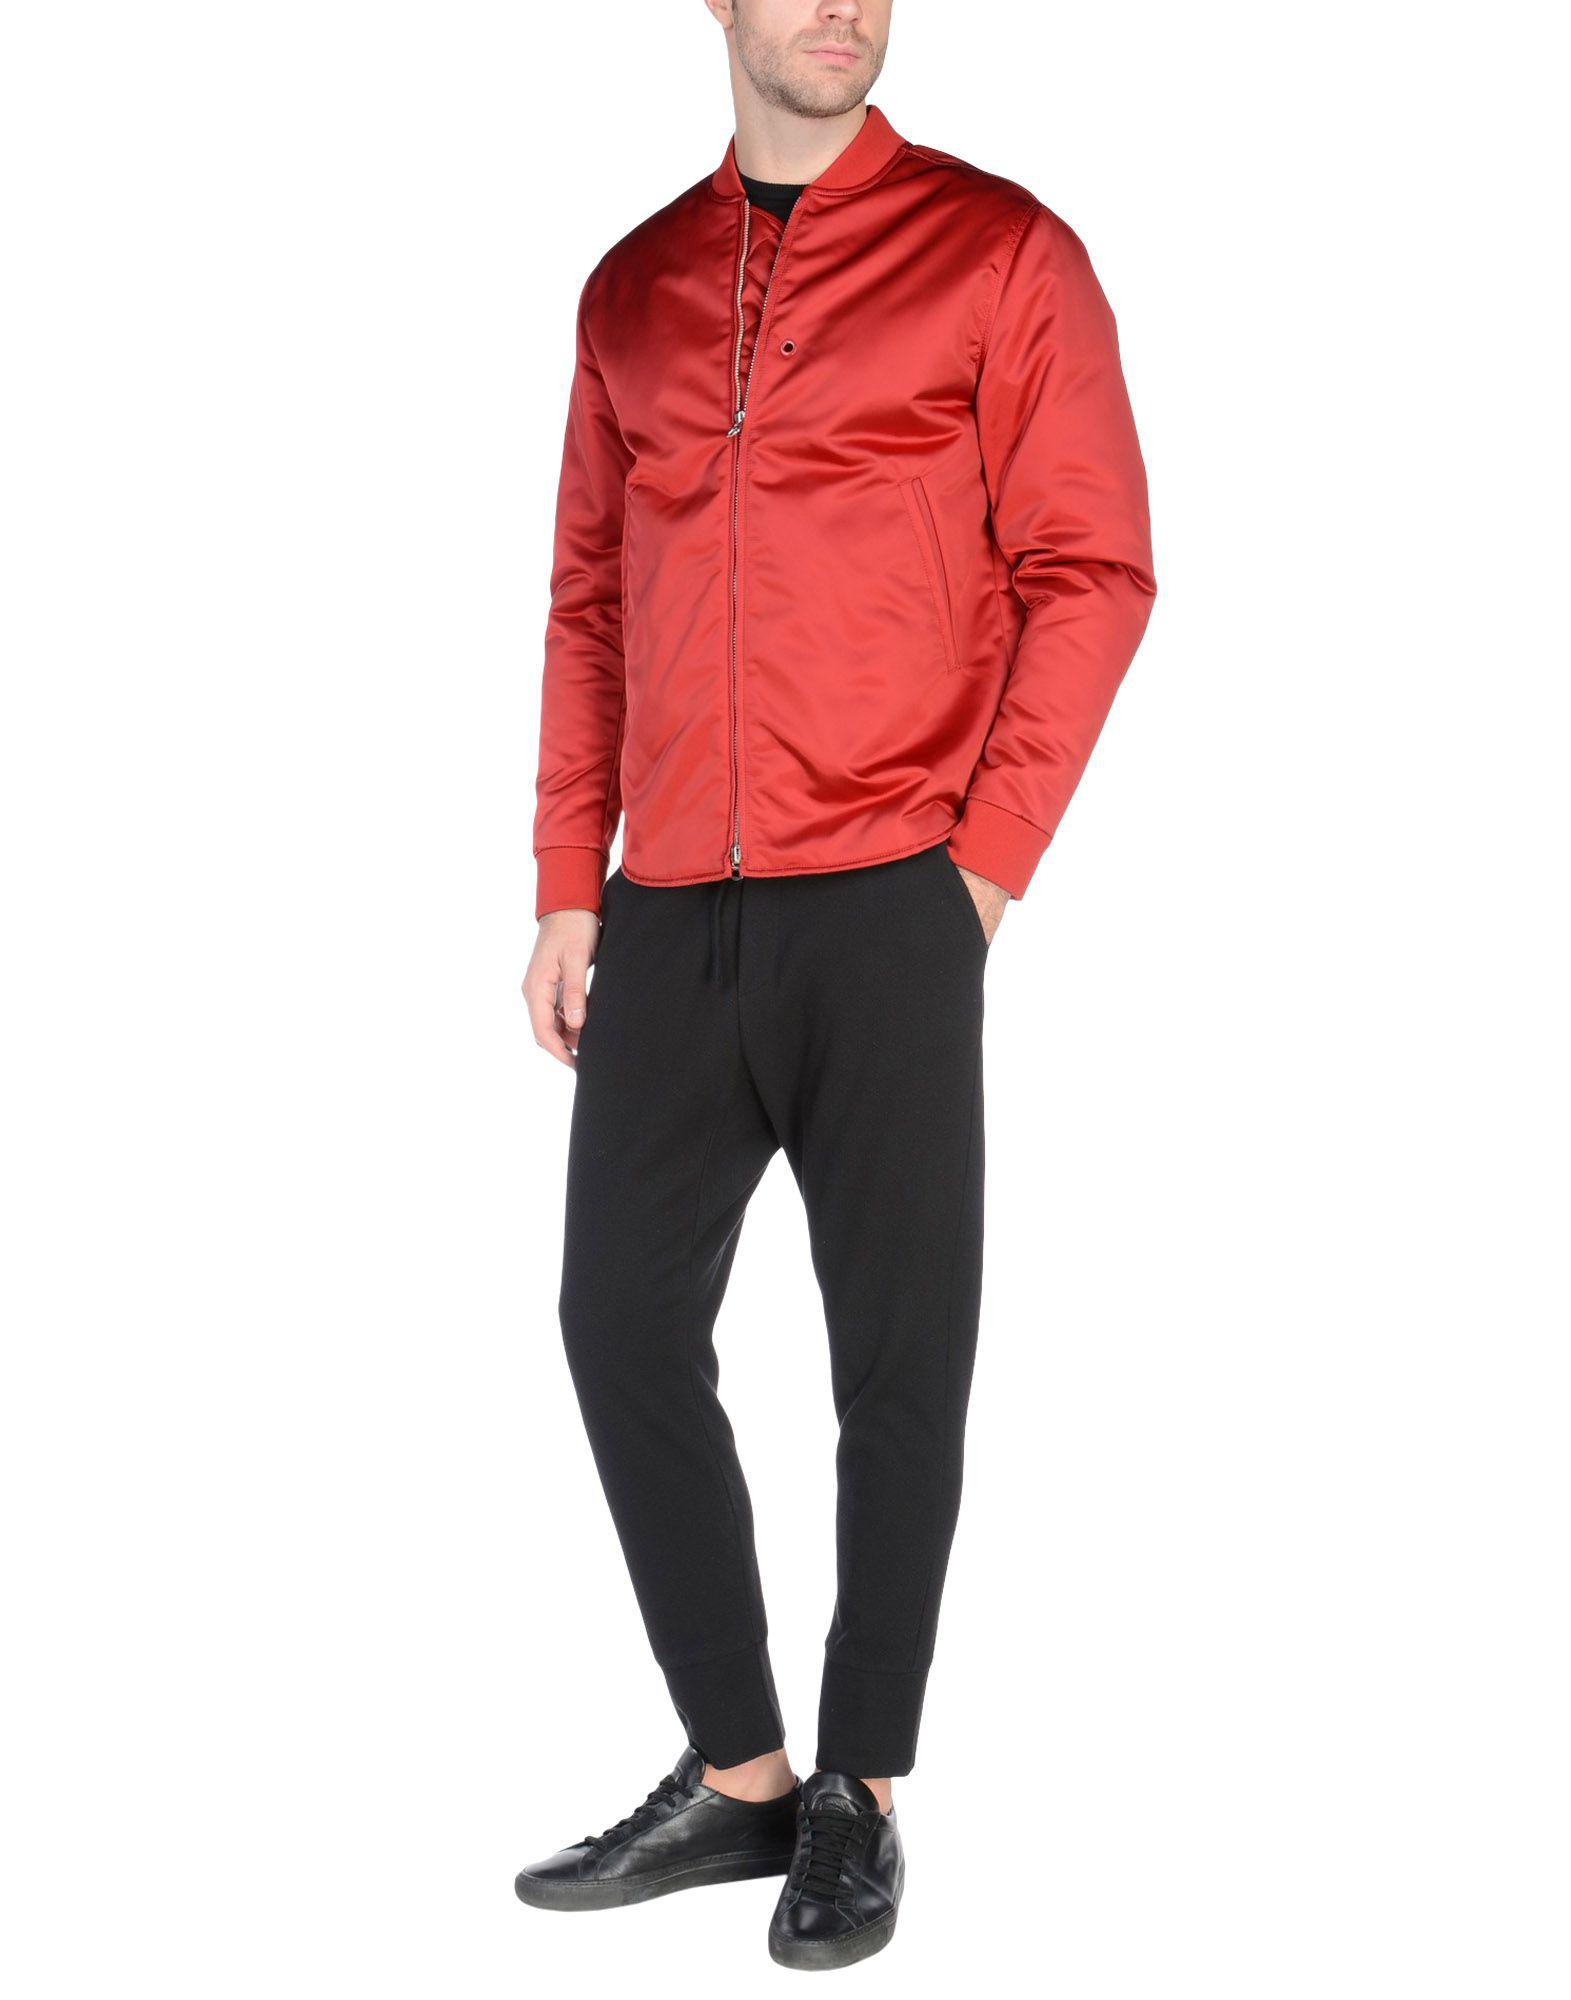 Acne Studios Synthetic Jacket in Maroon (Red) for Men